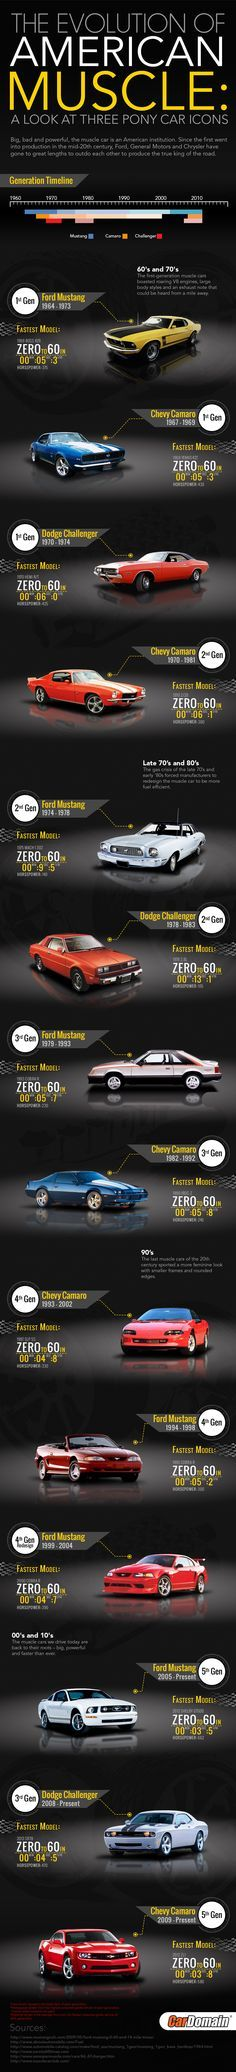 The Evolution of American Muscle